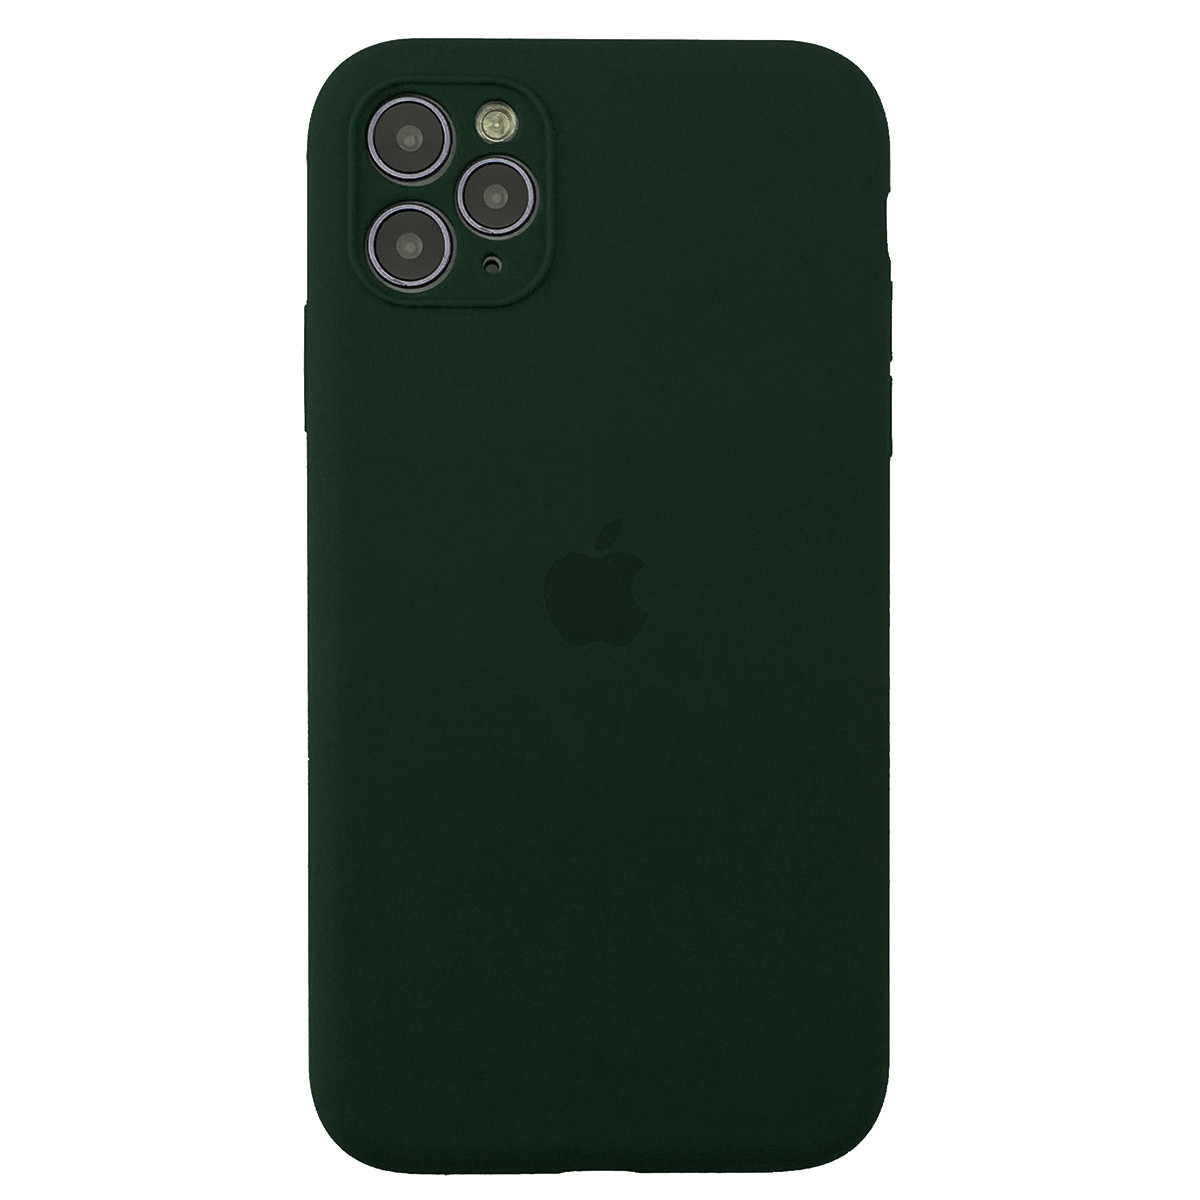 Чехол накладка xCase для iPhone 11 Pro Max Silicone Case Full Camera Forest green